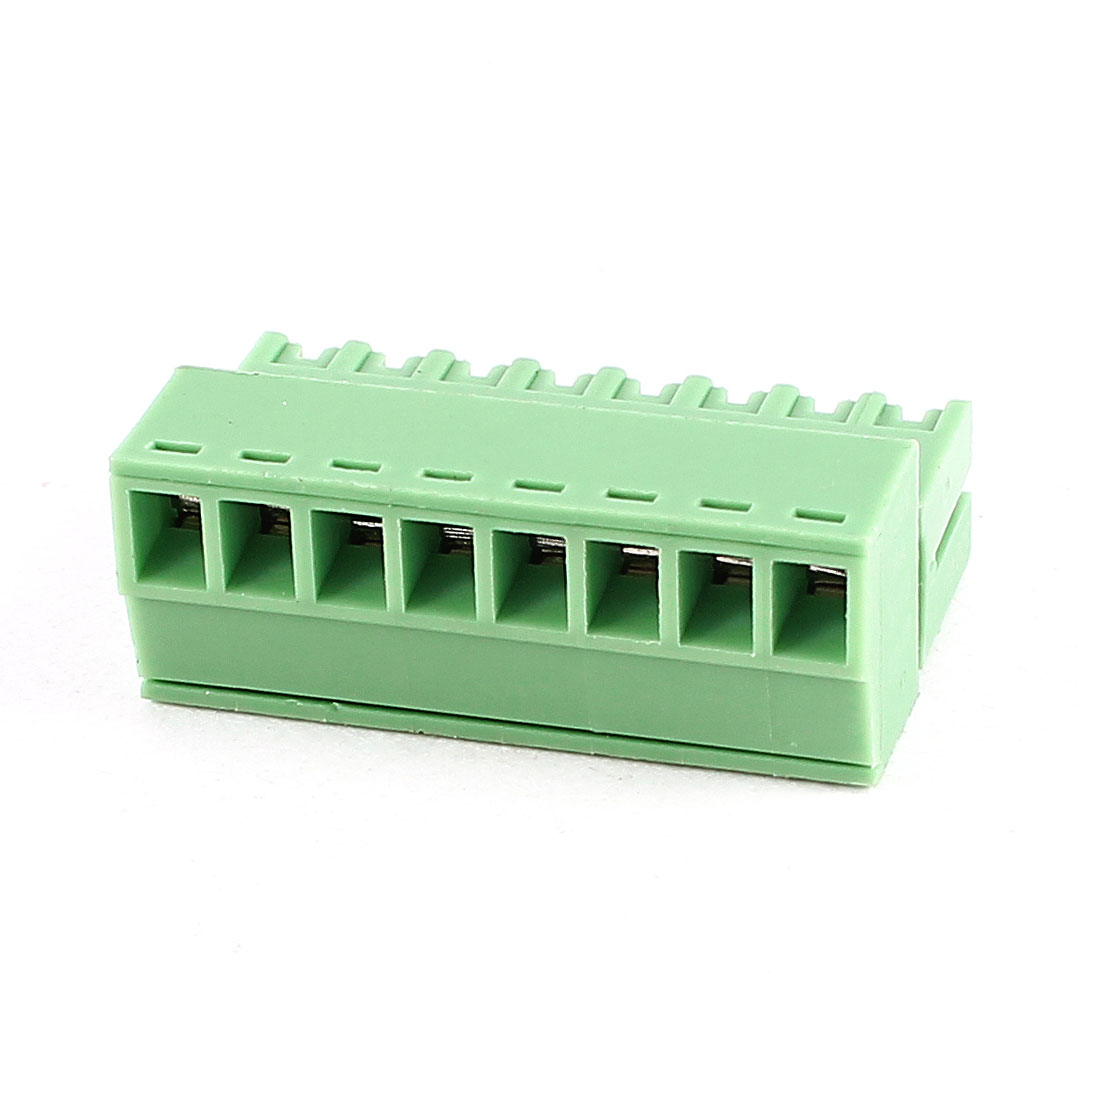 Green 8Pin 3.5mm Spacing PCB Screw Terminal Block Connector 300V 8A AWG22-16